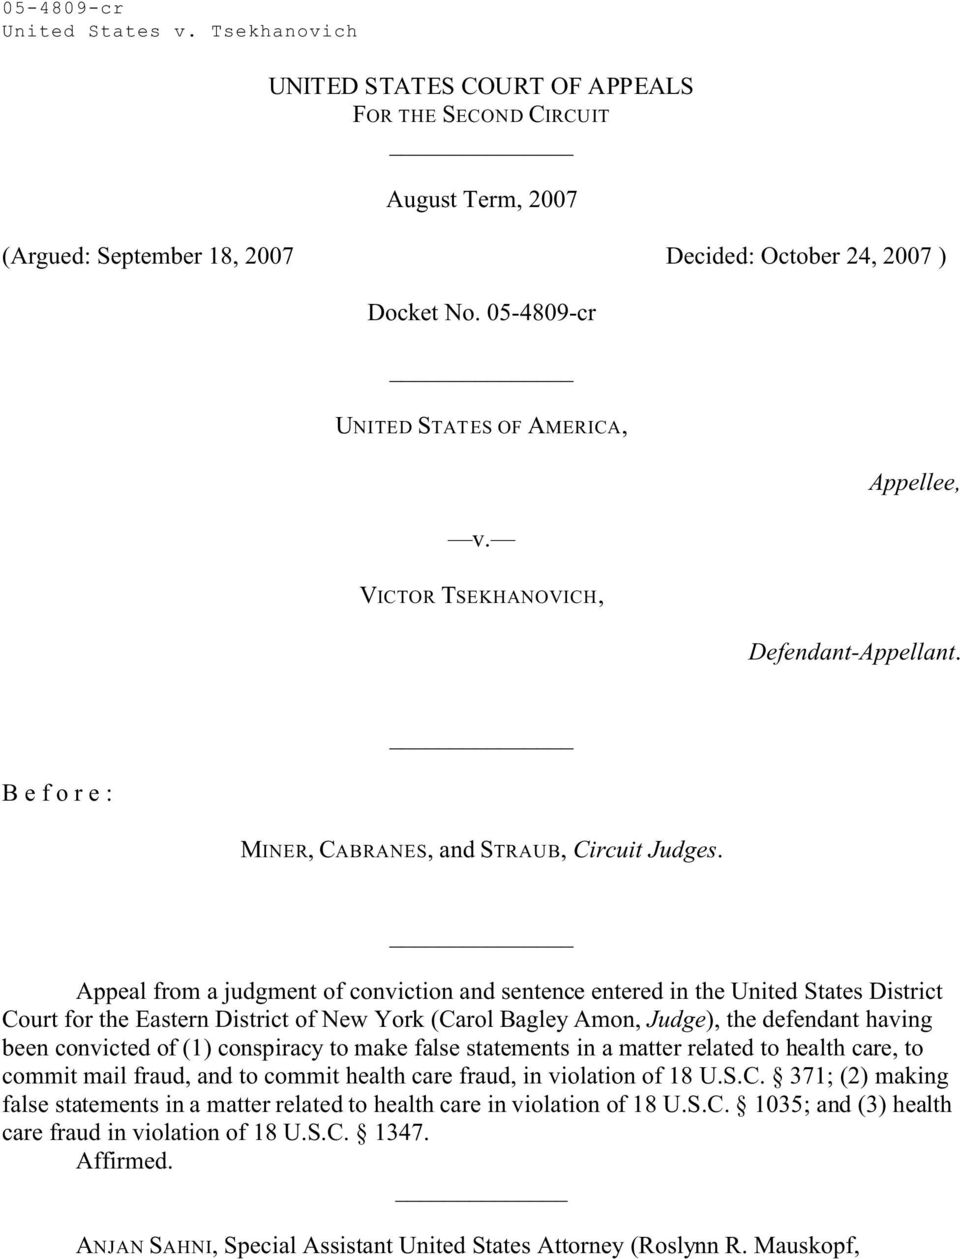 Appeal from a judgment of conviction and sentence entered in the United States District Court for the Eastern District of New York (Carol Bagley Amon, Judge), the defendant having been convicted of